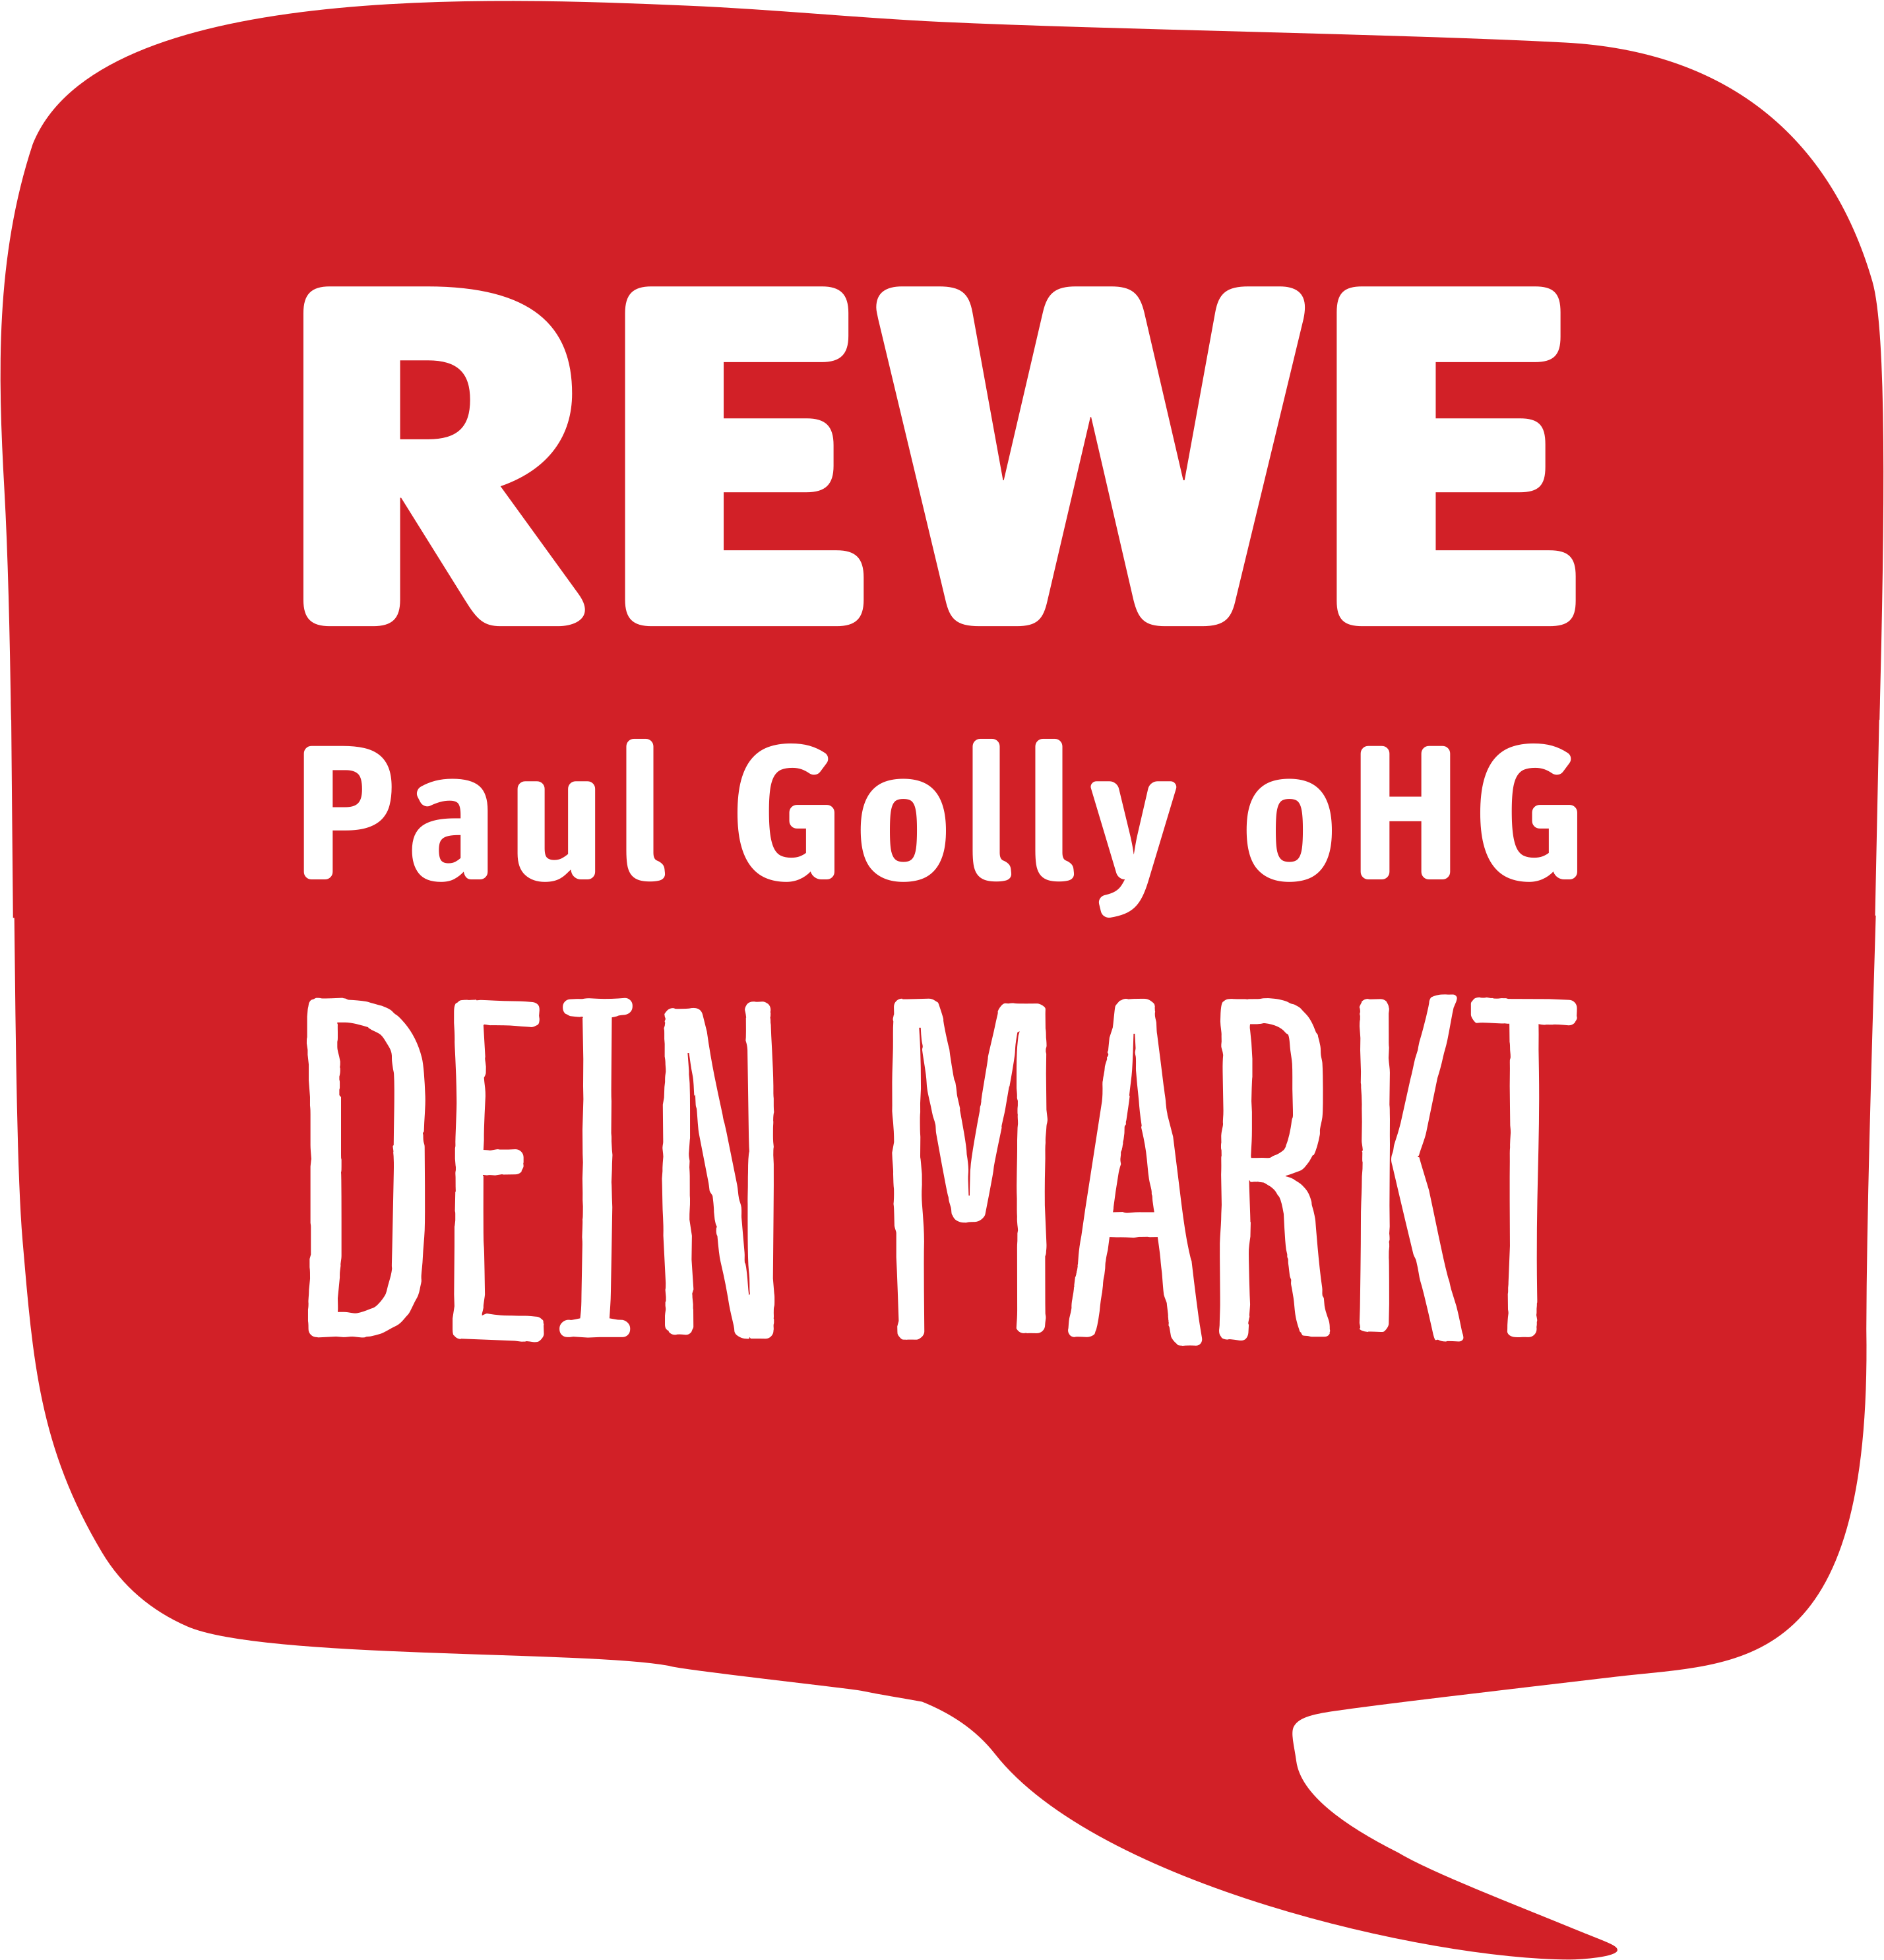 Rewe Paul Golly